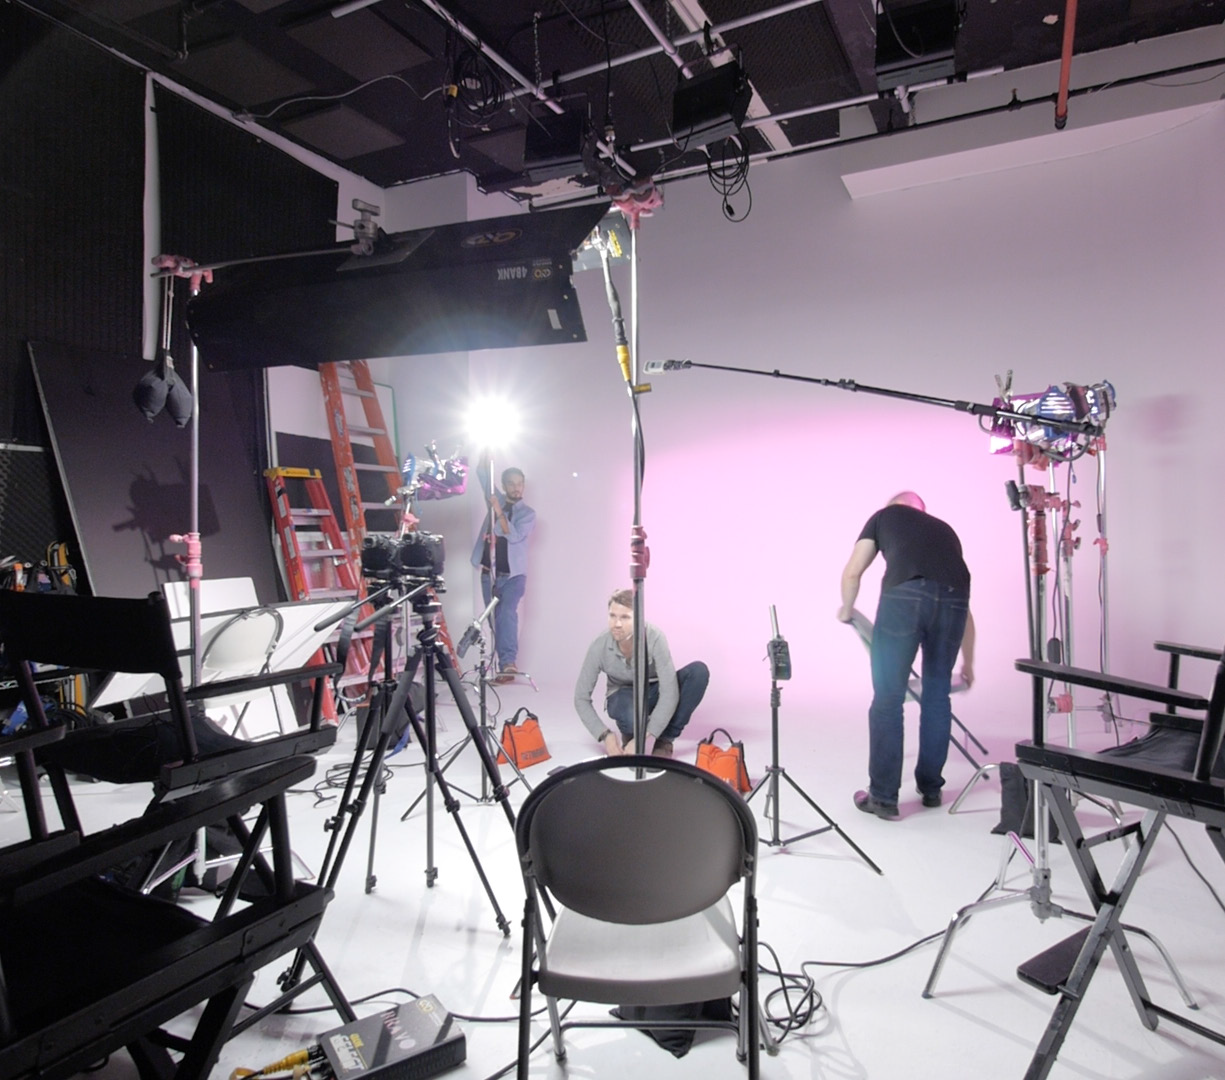 Production Company for Hunterdon County, NJ Businesses - Top Notch Cinema - About-us